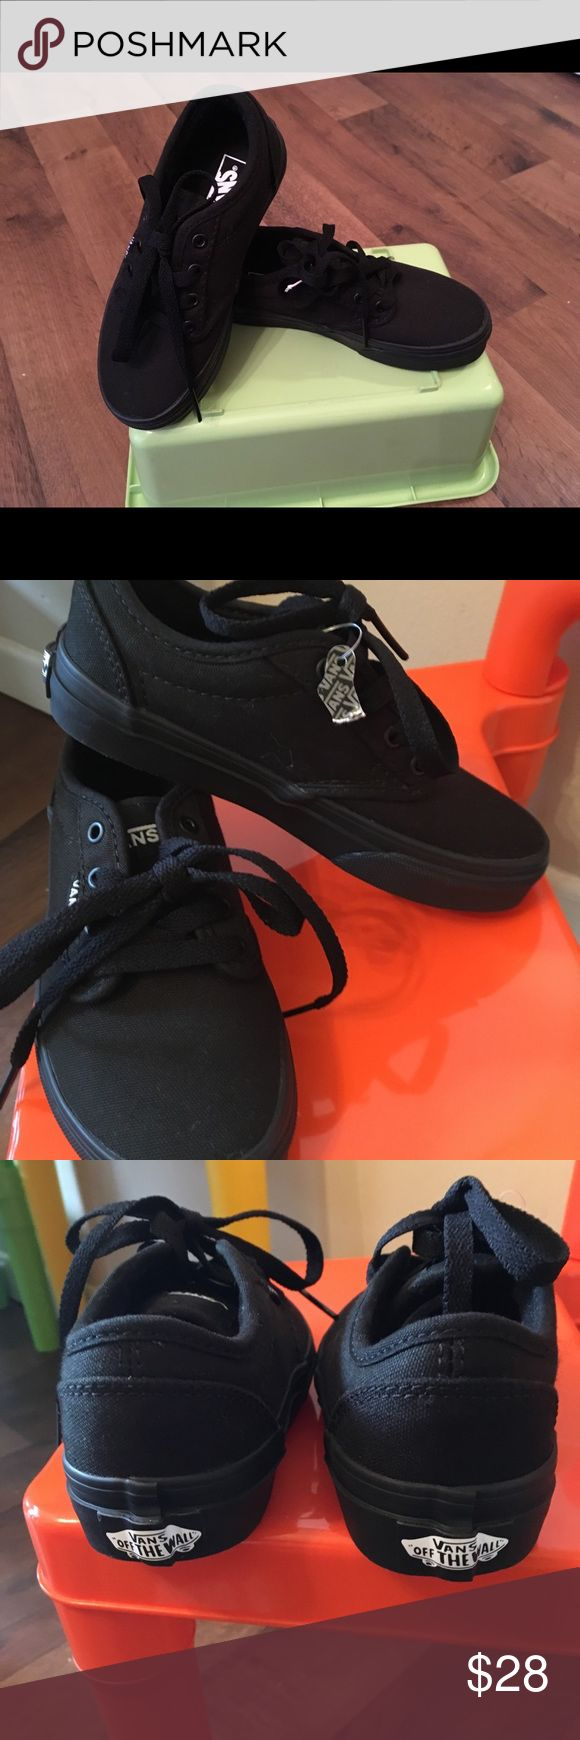 NWT Vans youth size 12.5 for girl or boy Great deal!! Super cool shoes Vans Shoes Sneakers